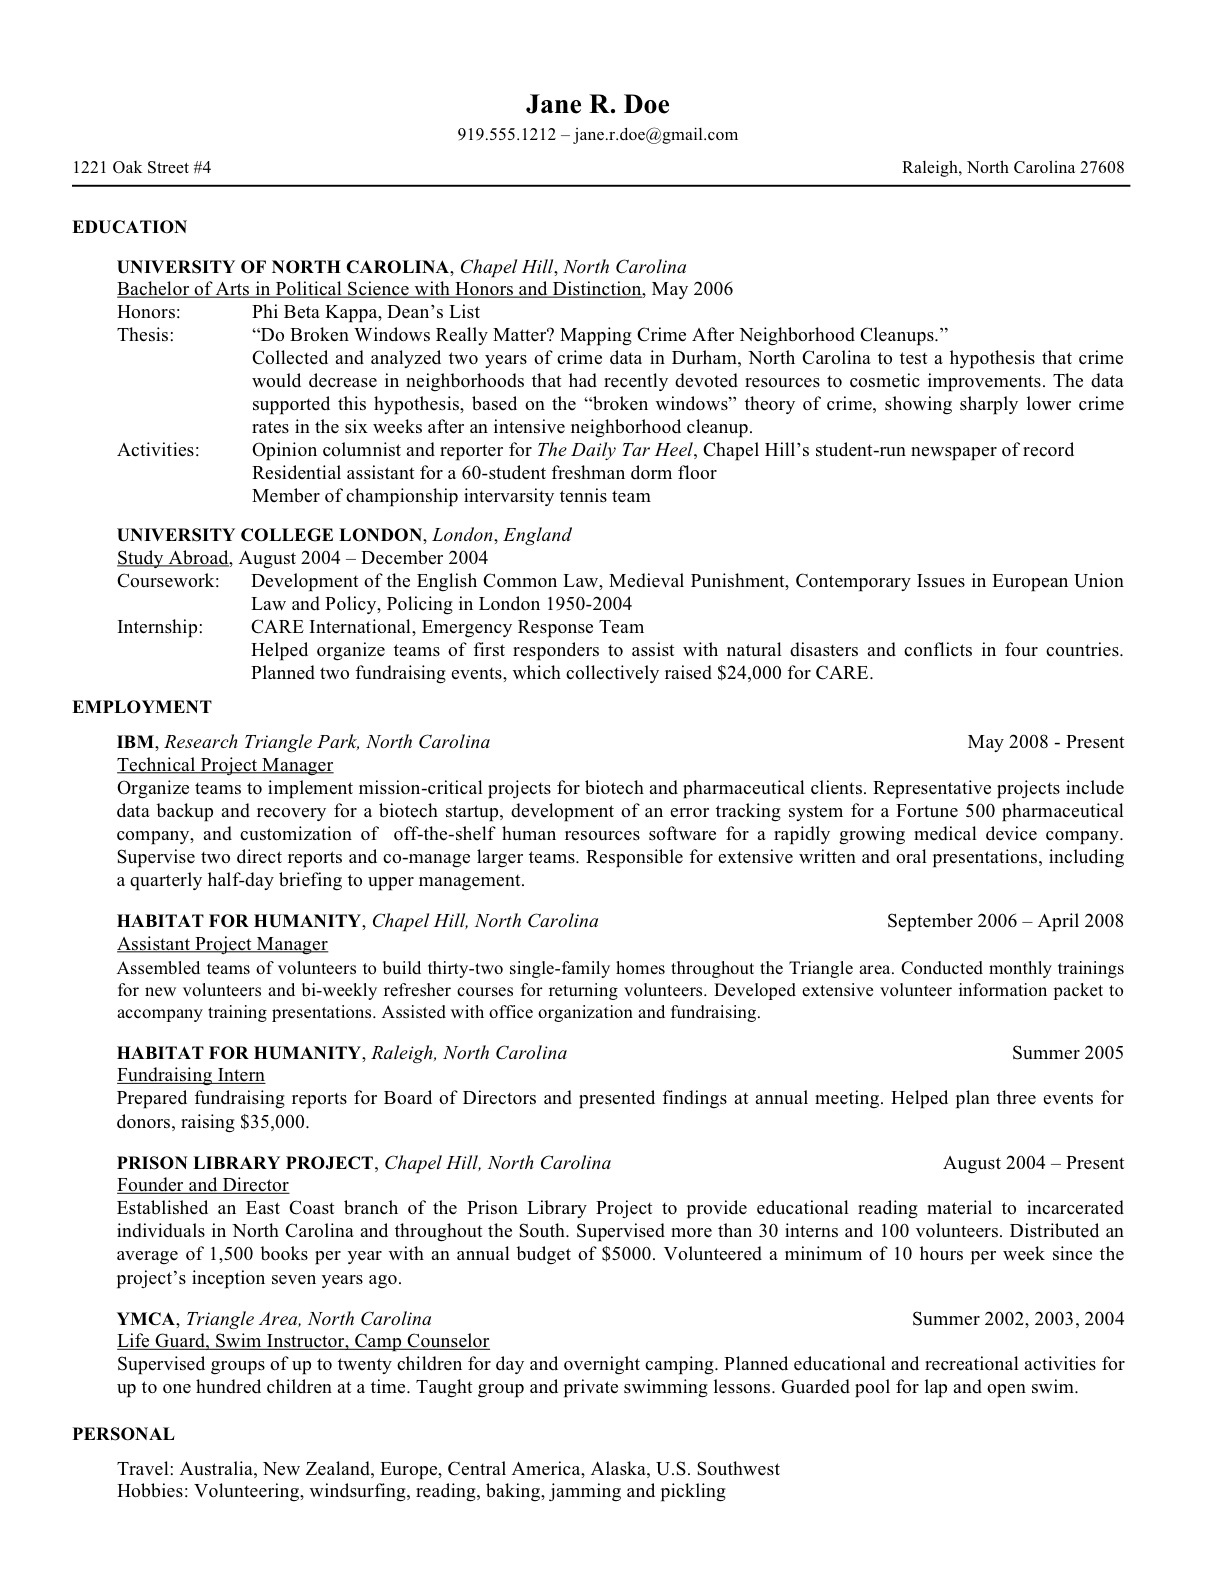 law school resume templates prepping your for of university at carlson management Resume Carlson School Of Management Resume Template